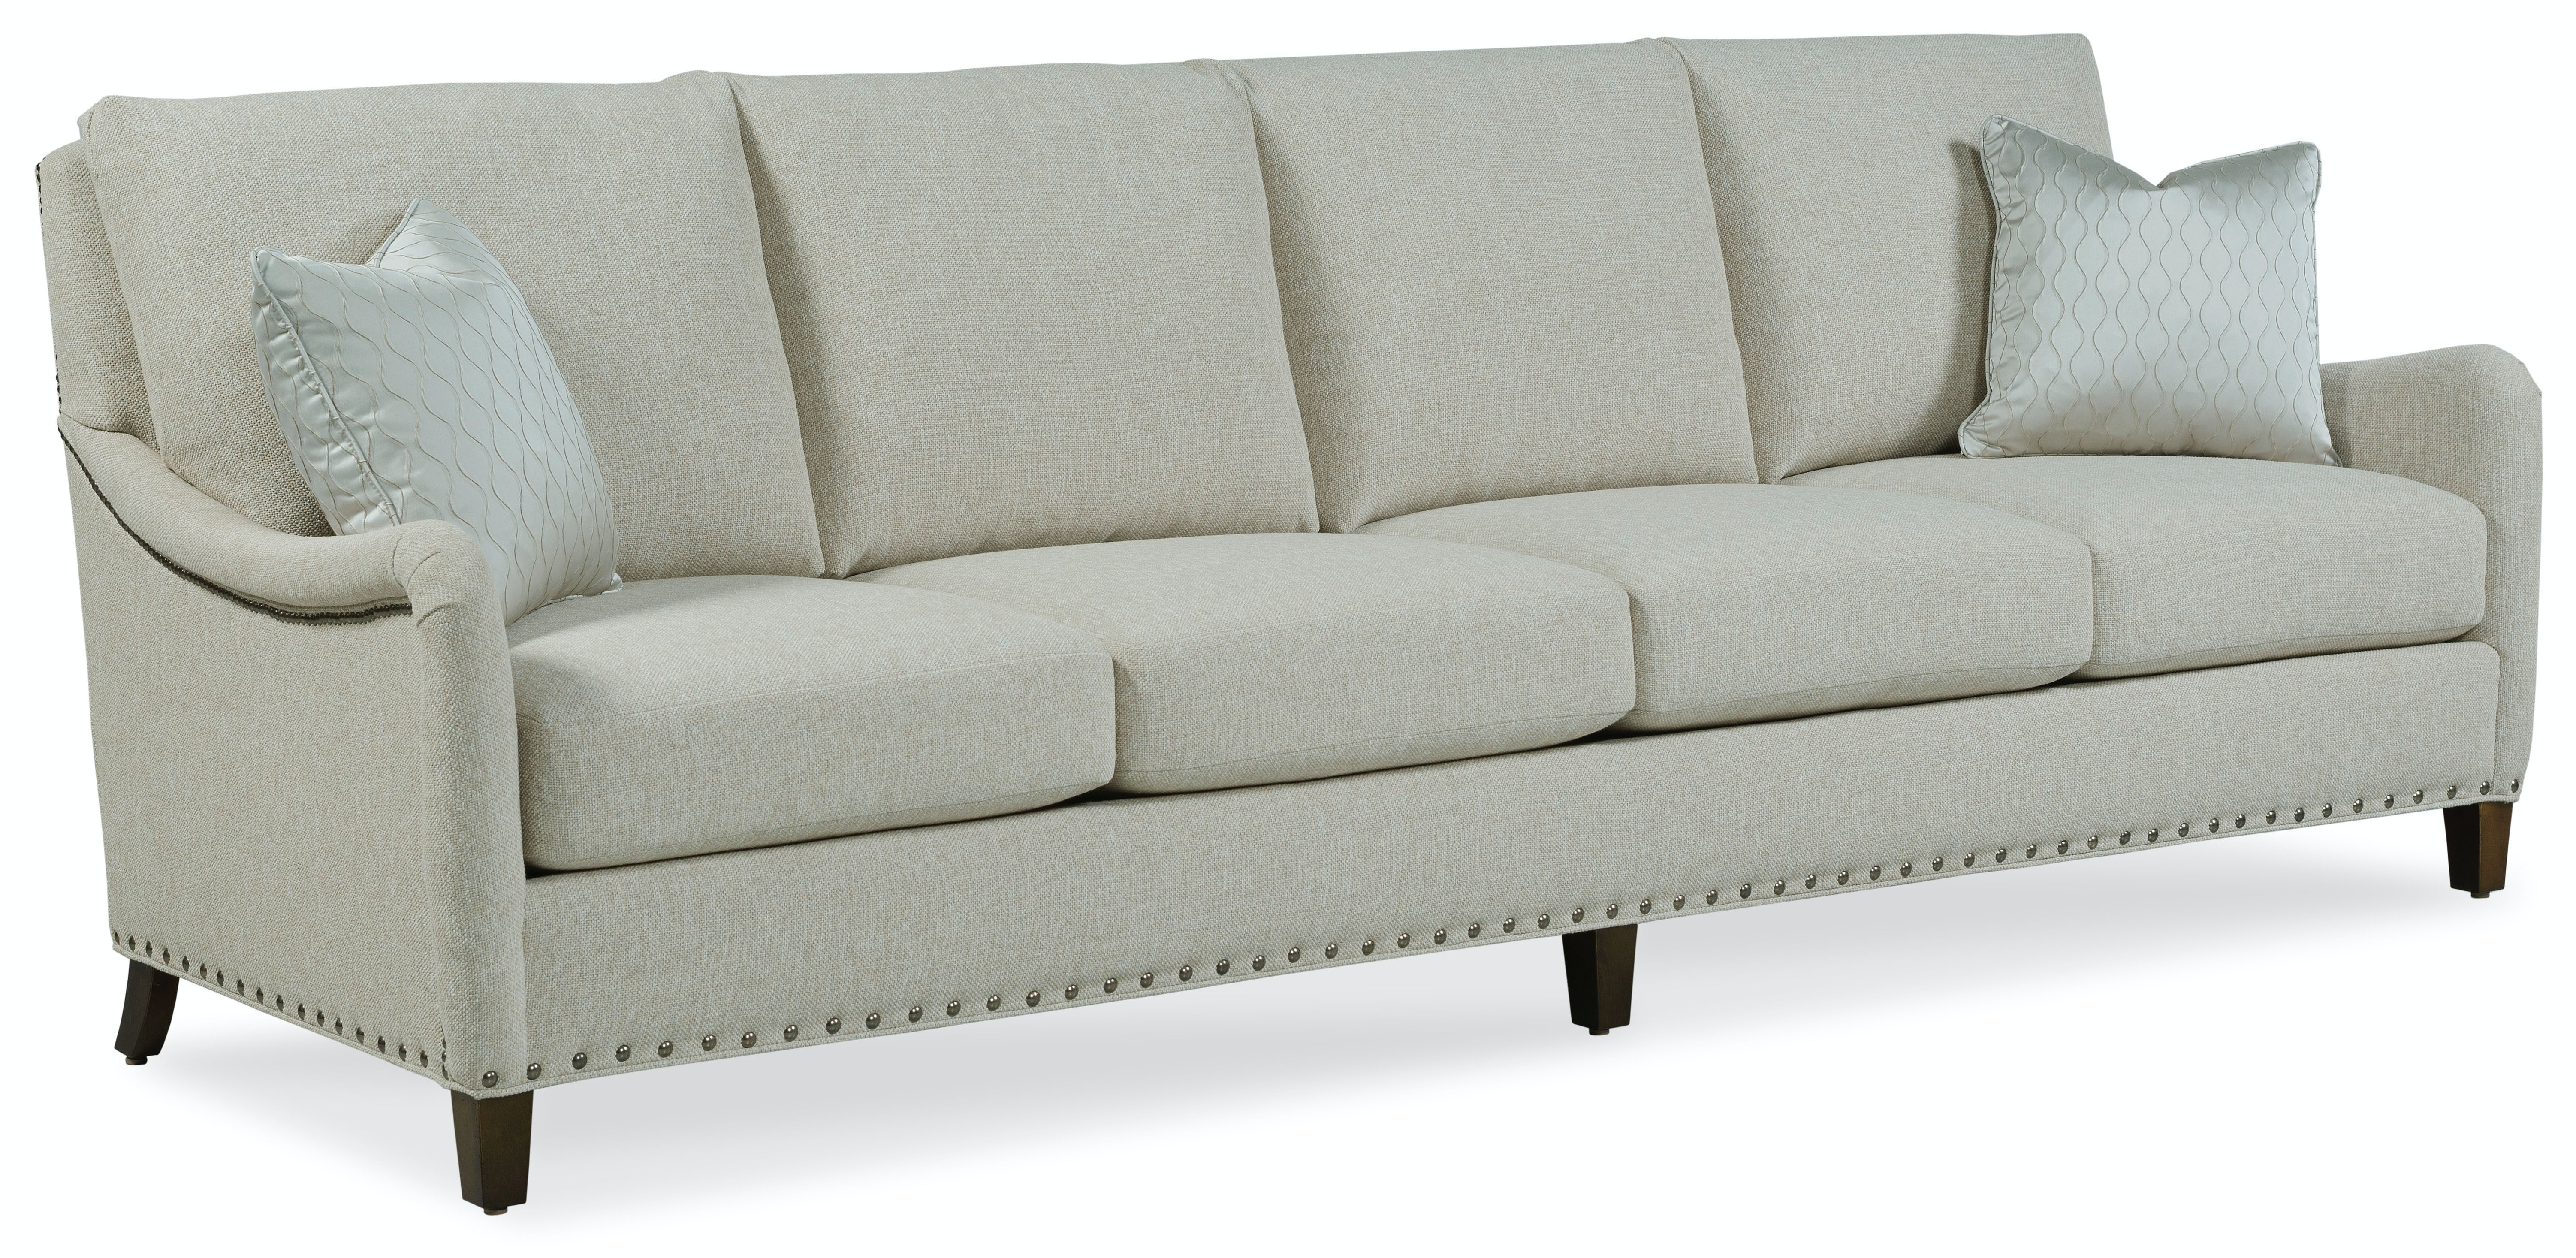 Sofa X Long Fairfield Chair Company Living Room Smythe X Long Sofa 2749 56